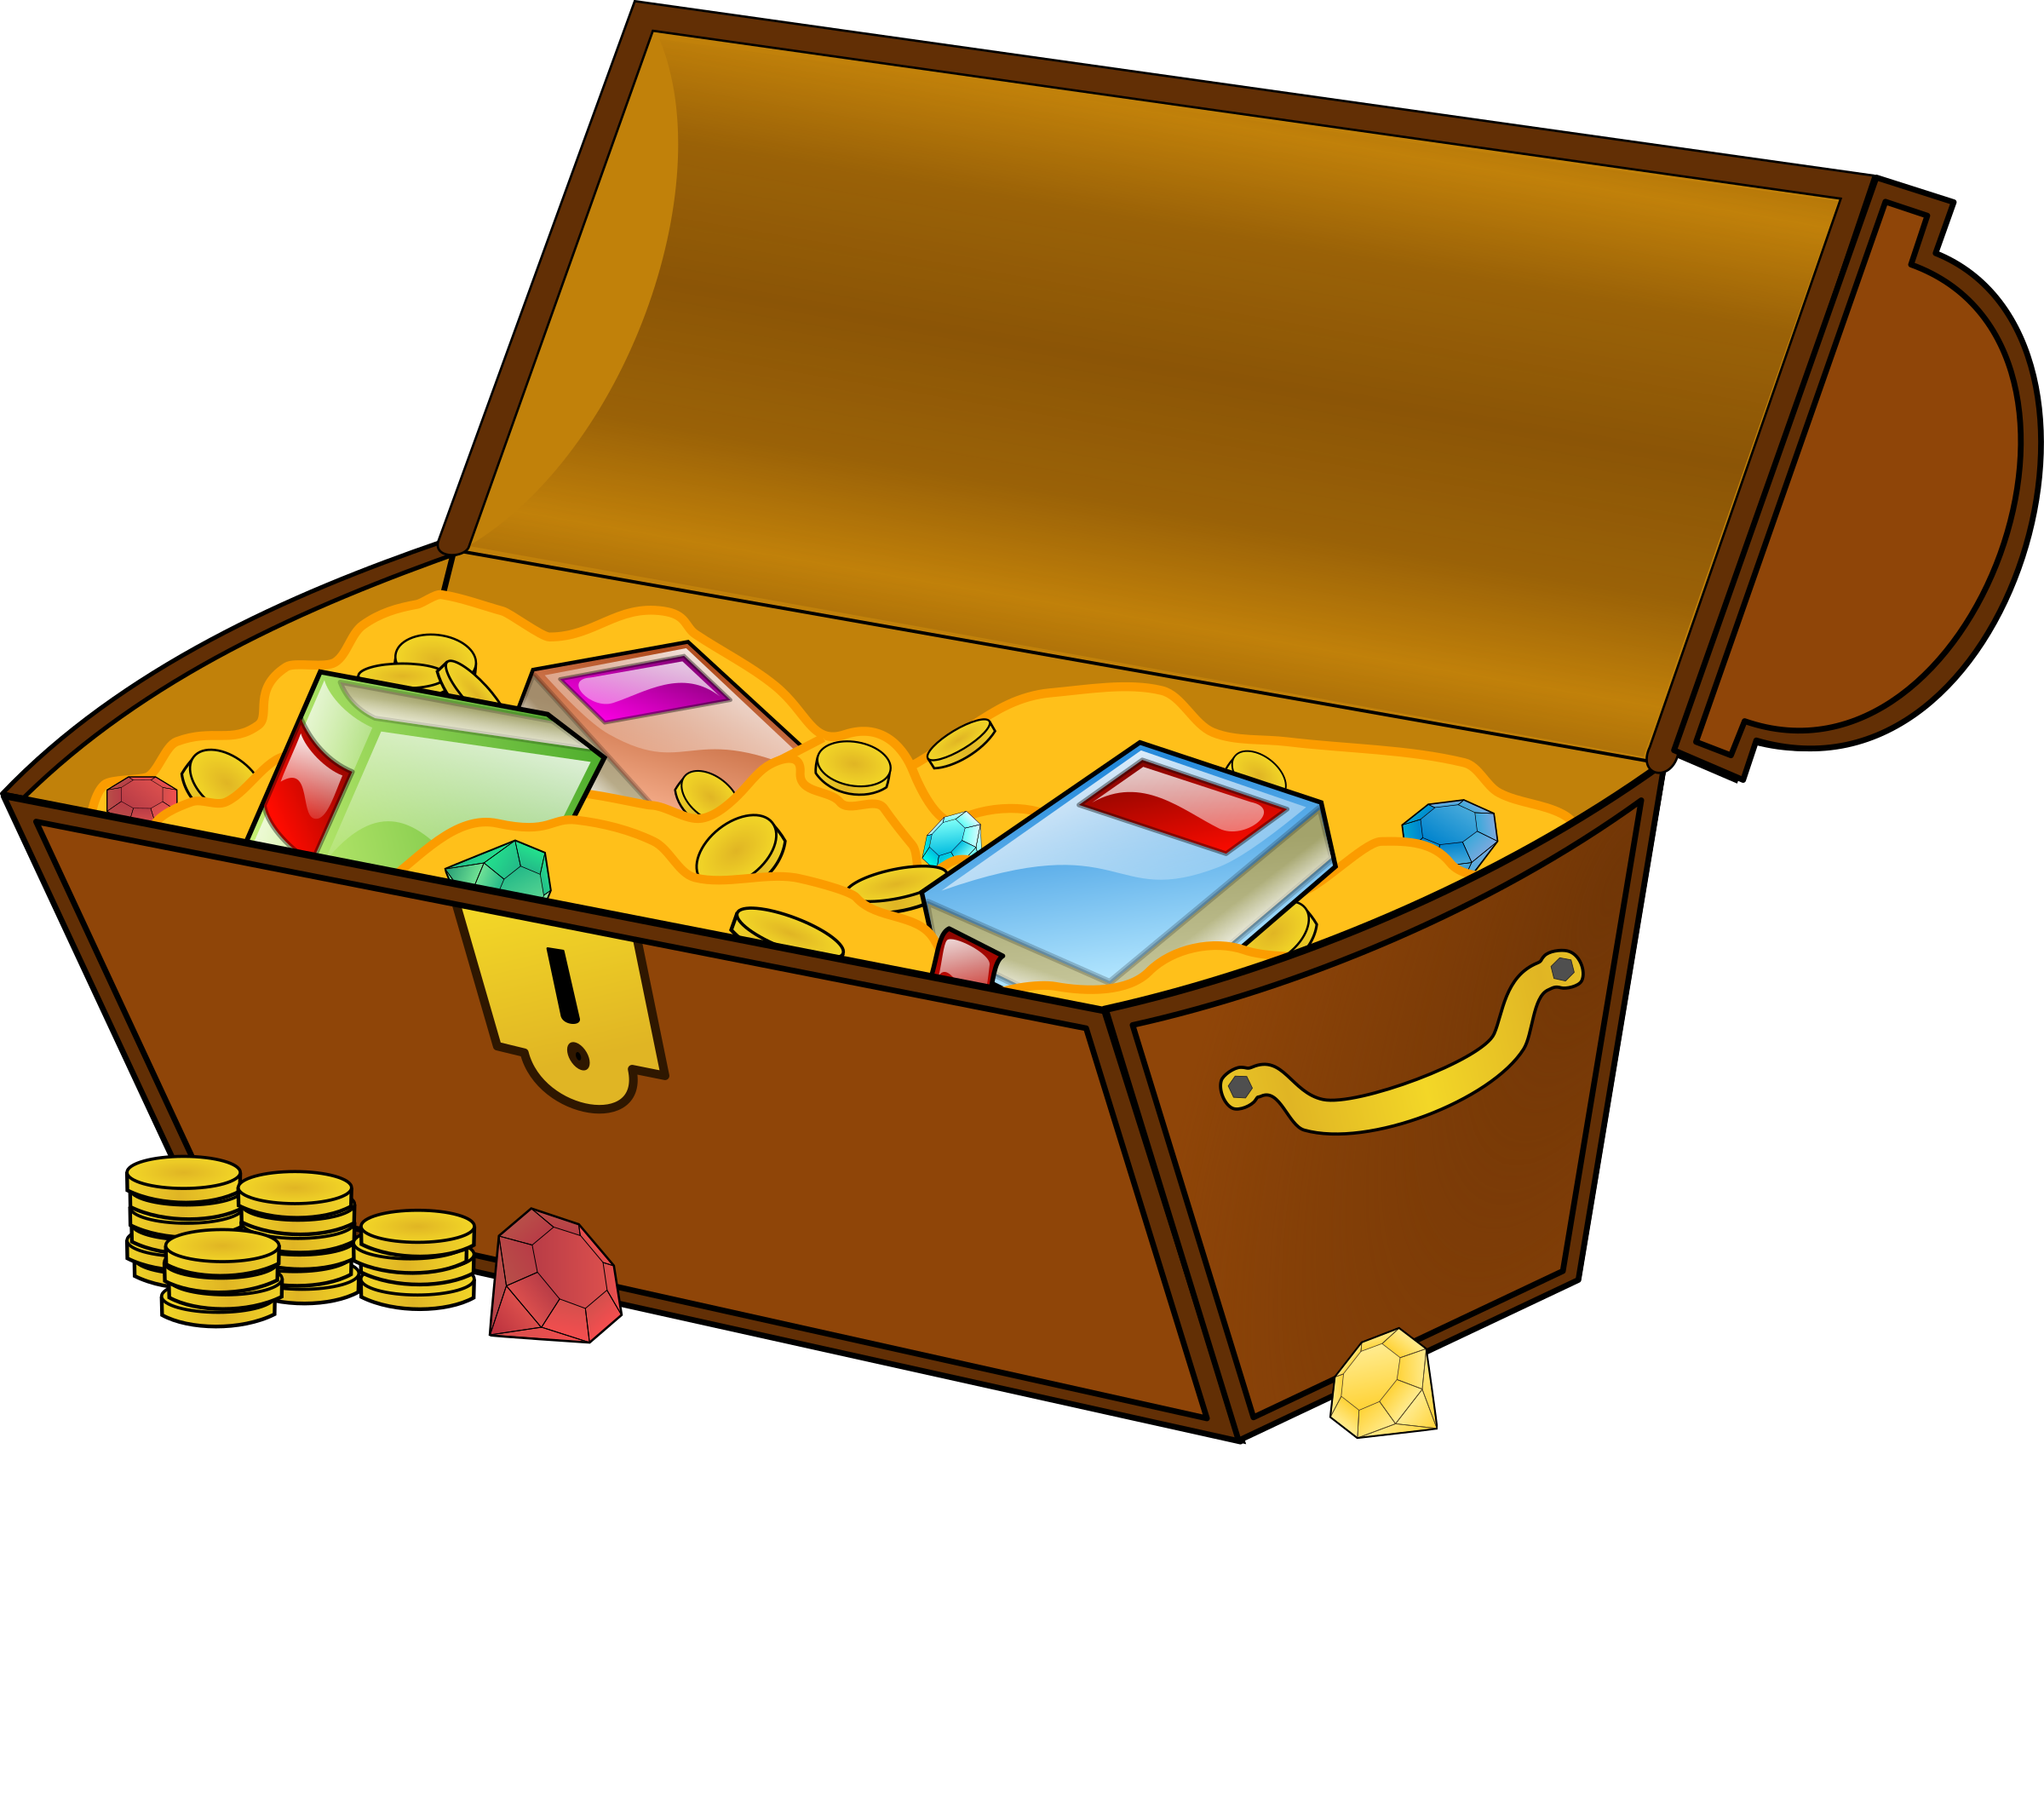 treasure chest by eady